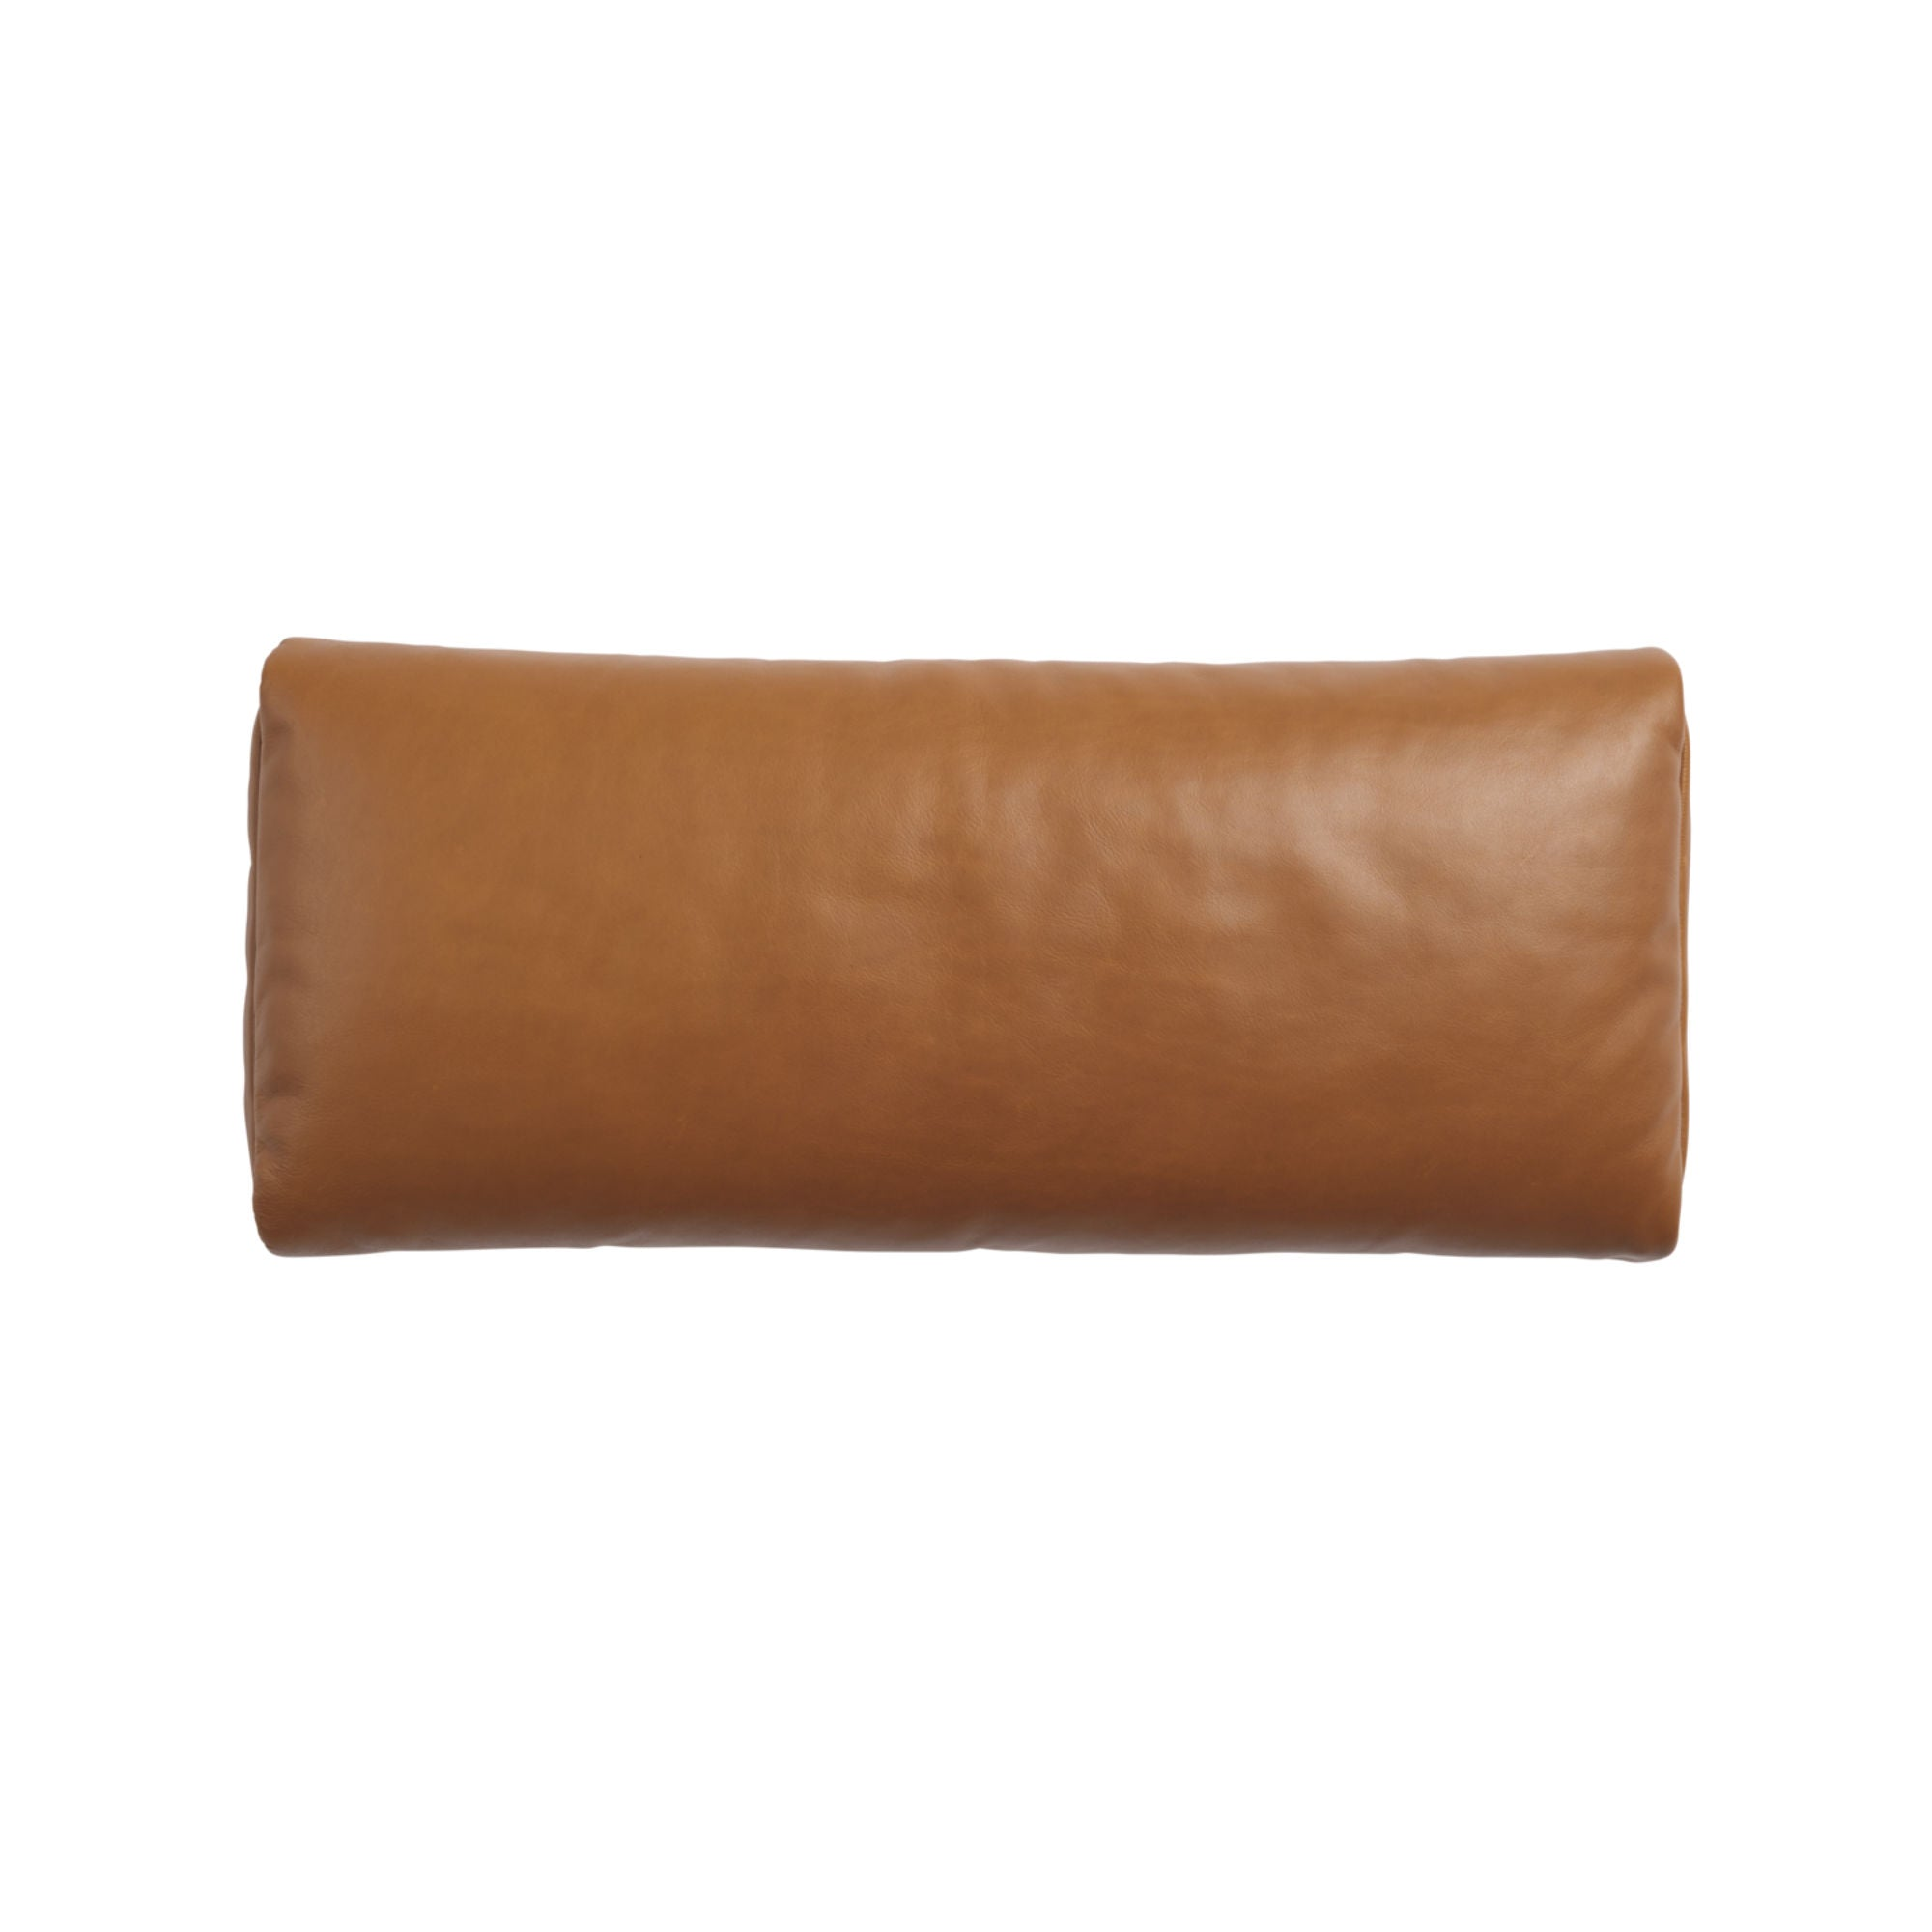 Muuto Outline Daybed Cushion , Refine Leather Cognac